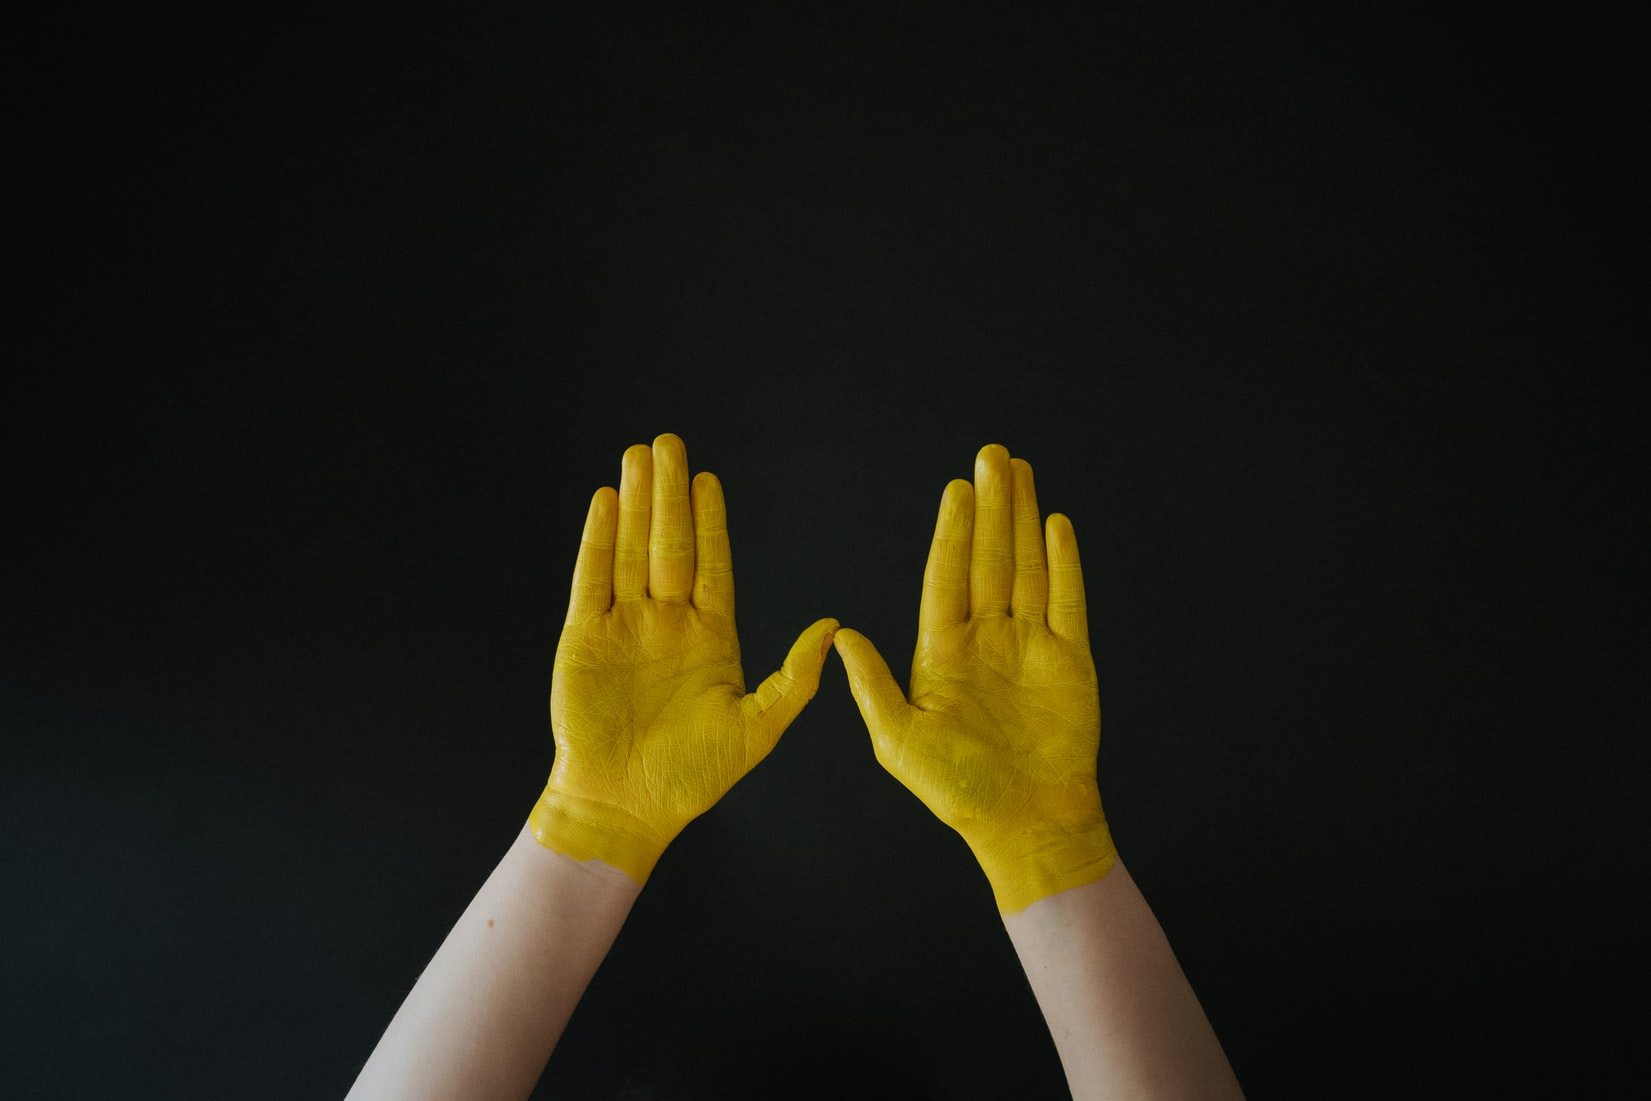 hands painted yellow on a black background